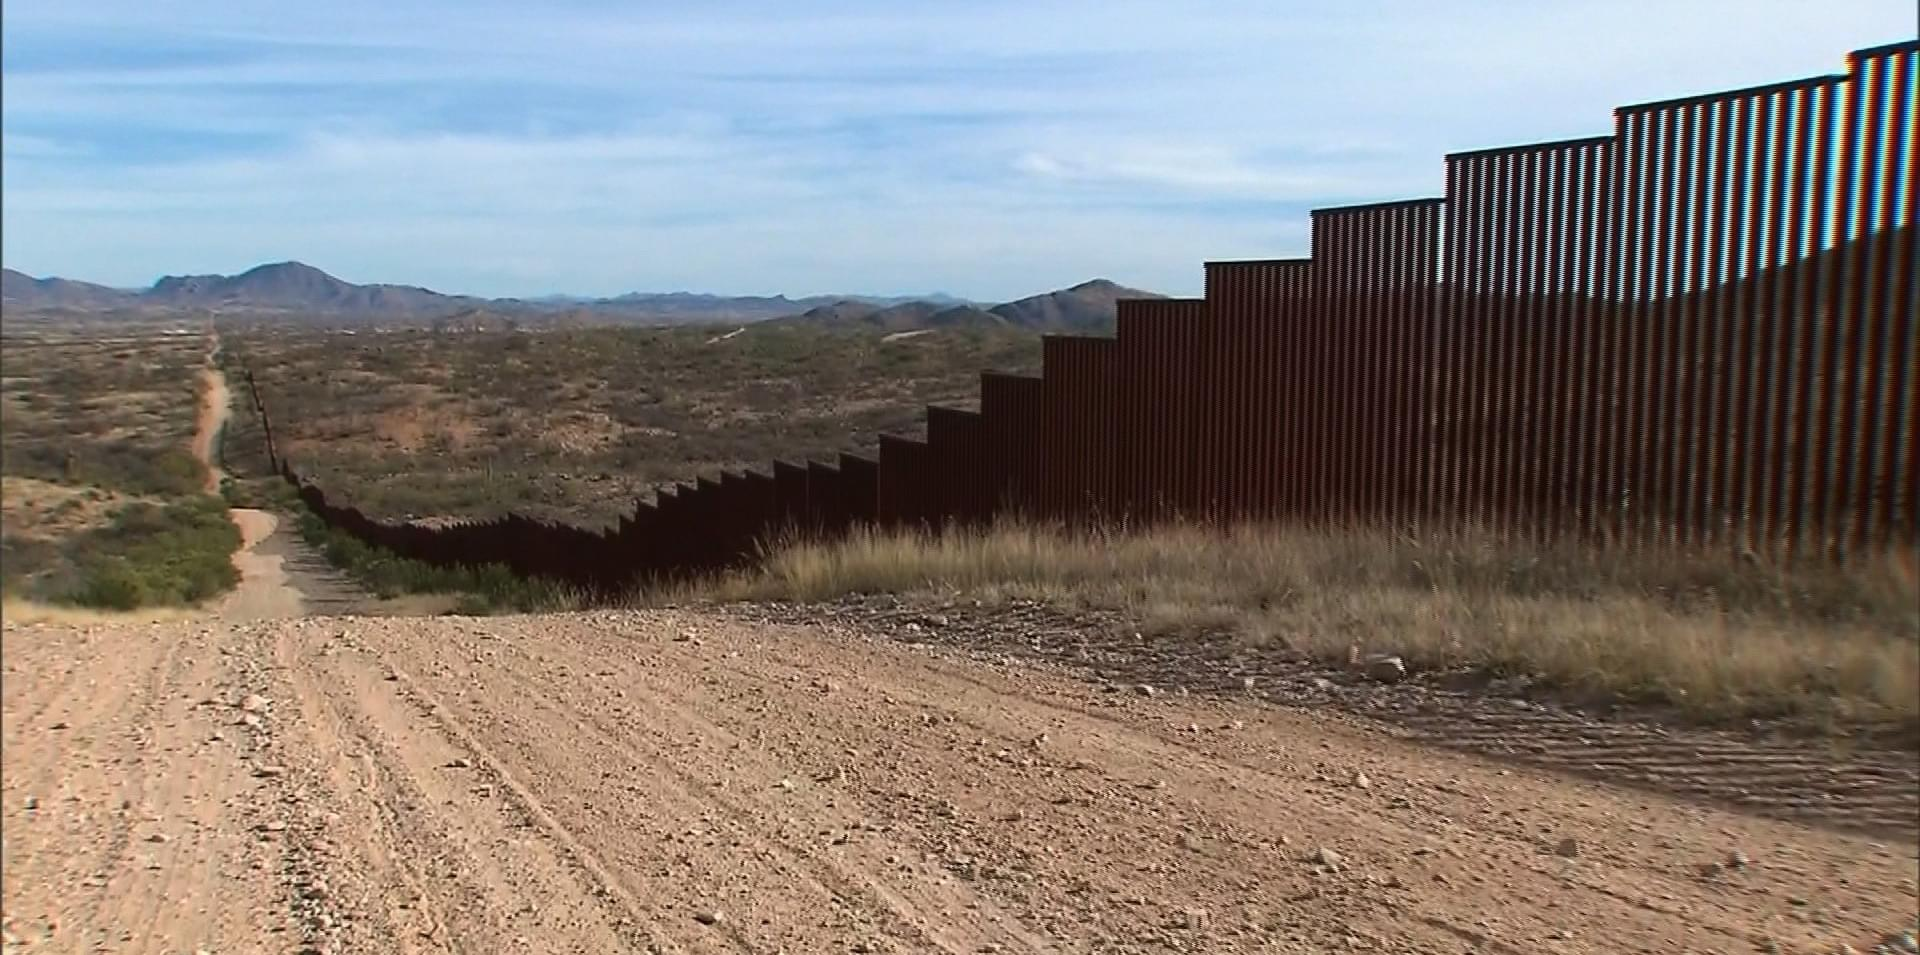 Morning News: Border Patrol Agent Describes Conditions